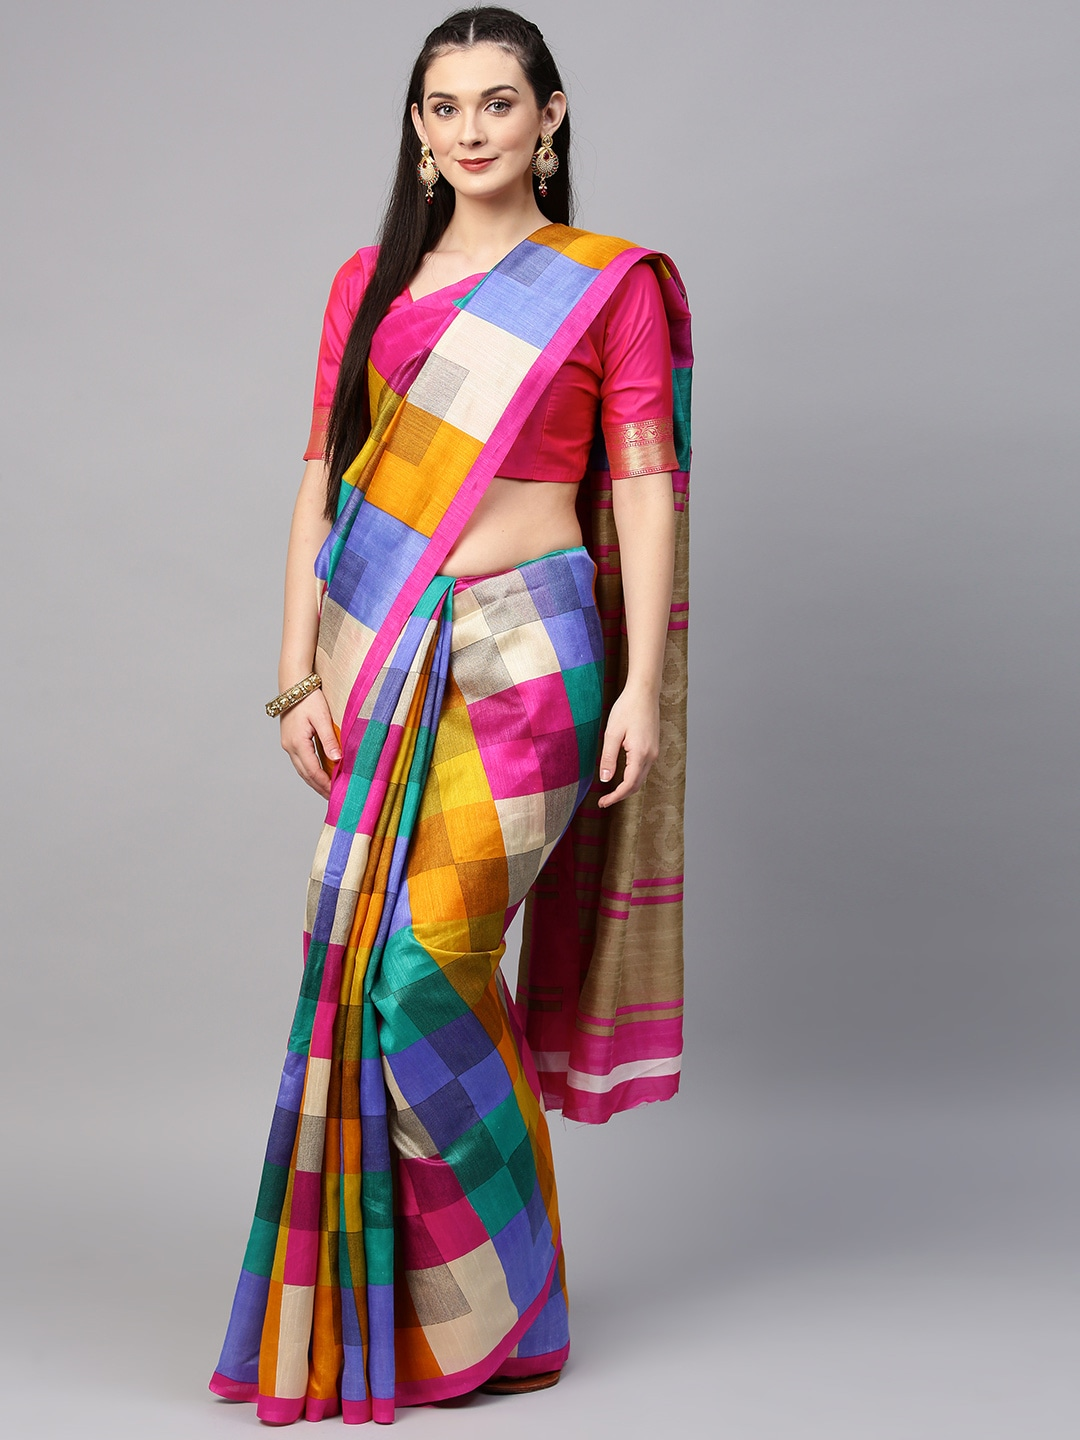 d0a8b94dfcb Dress Sarees Shrug - Buy Dress Sarees Shrug online in India